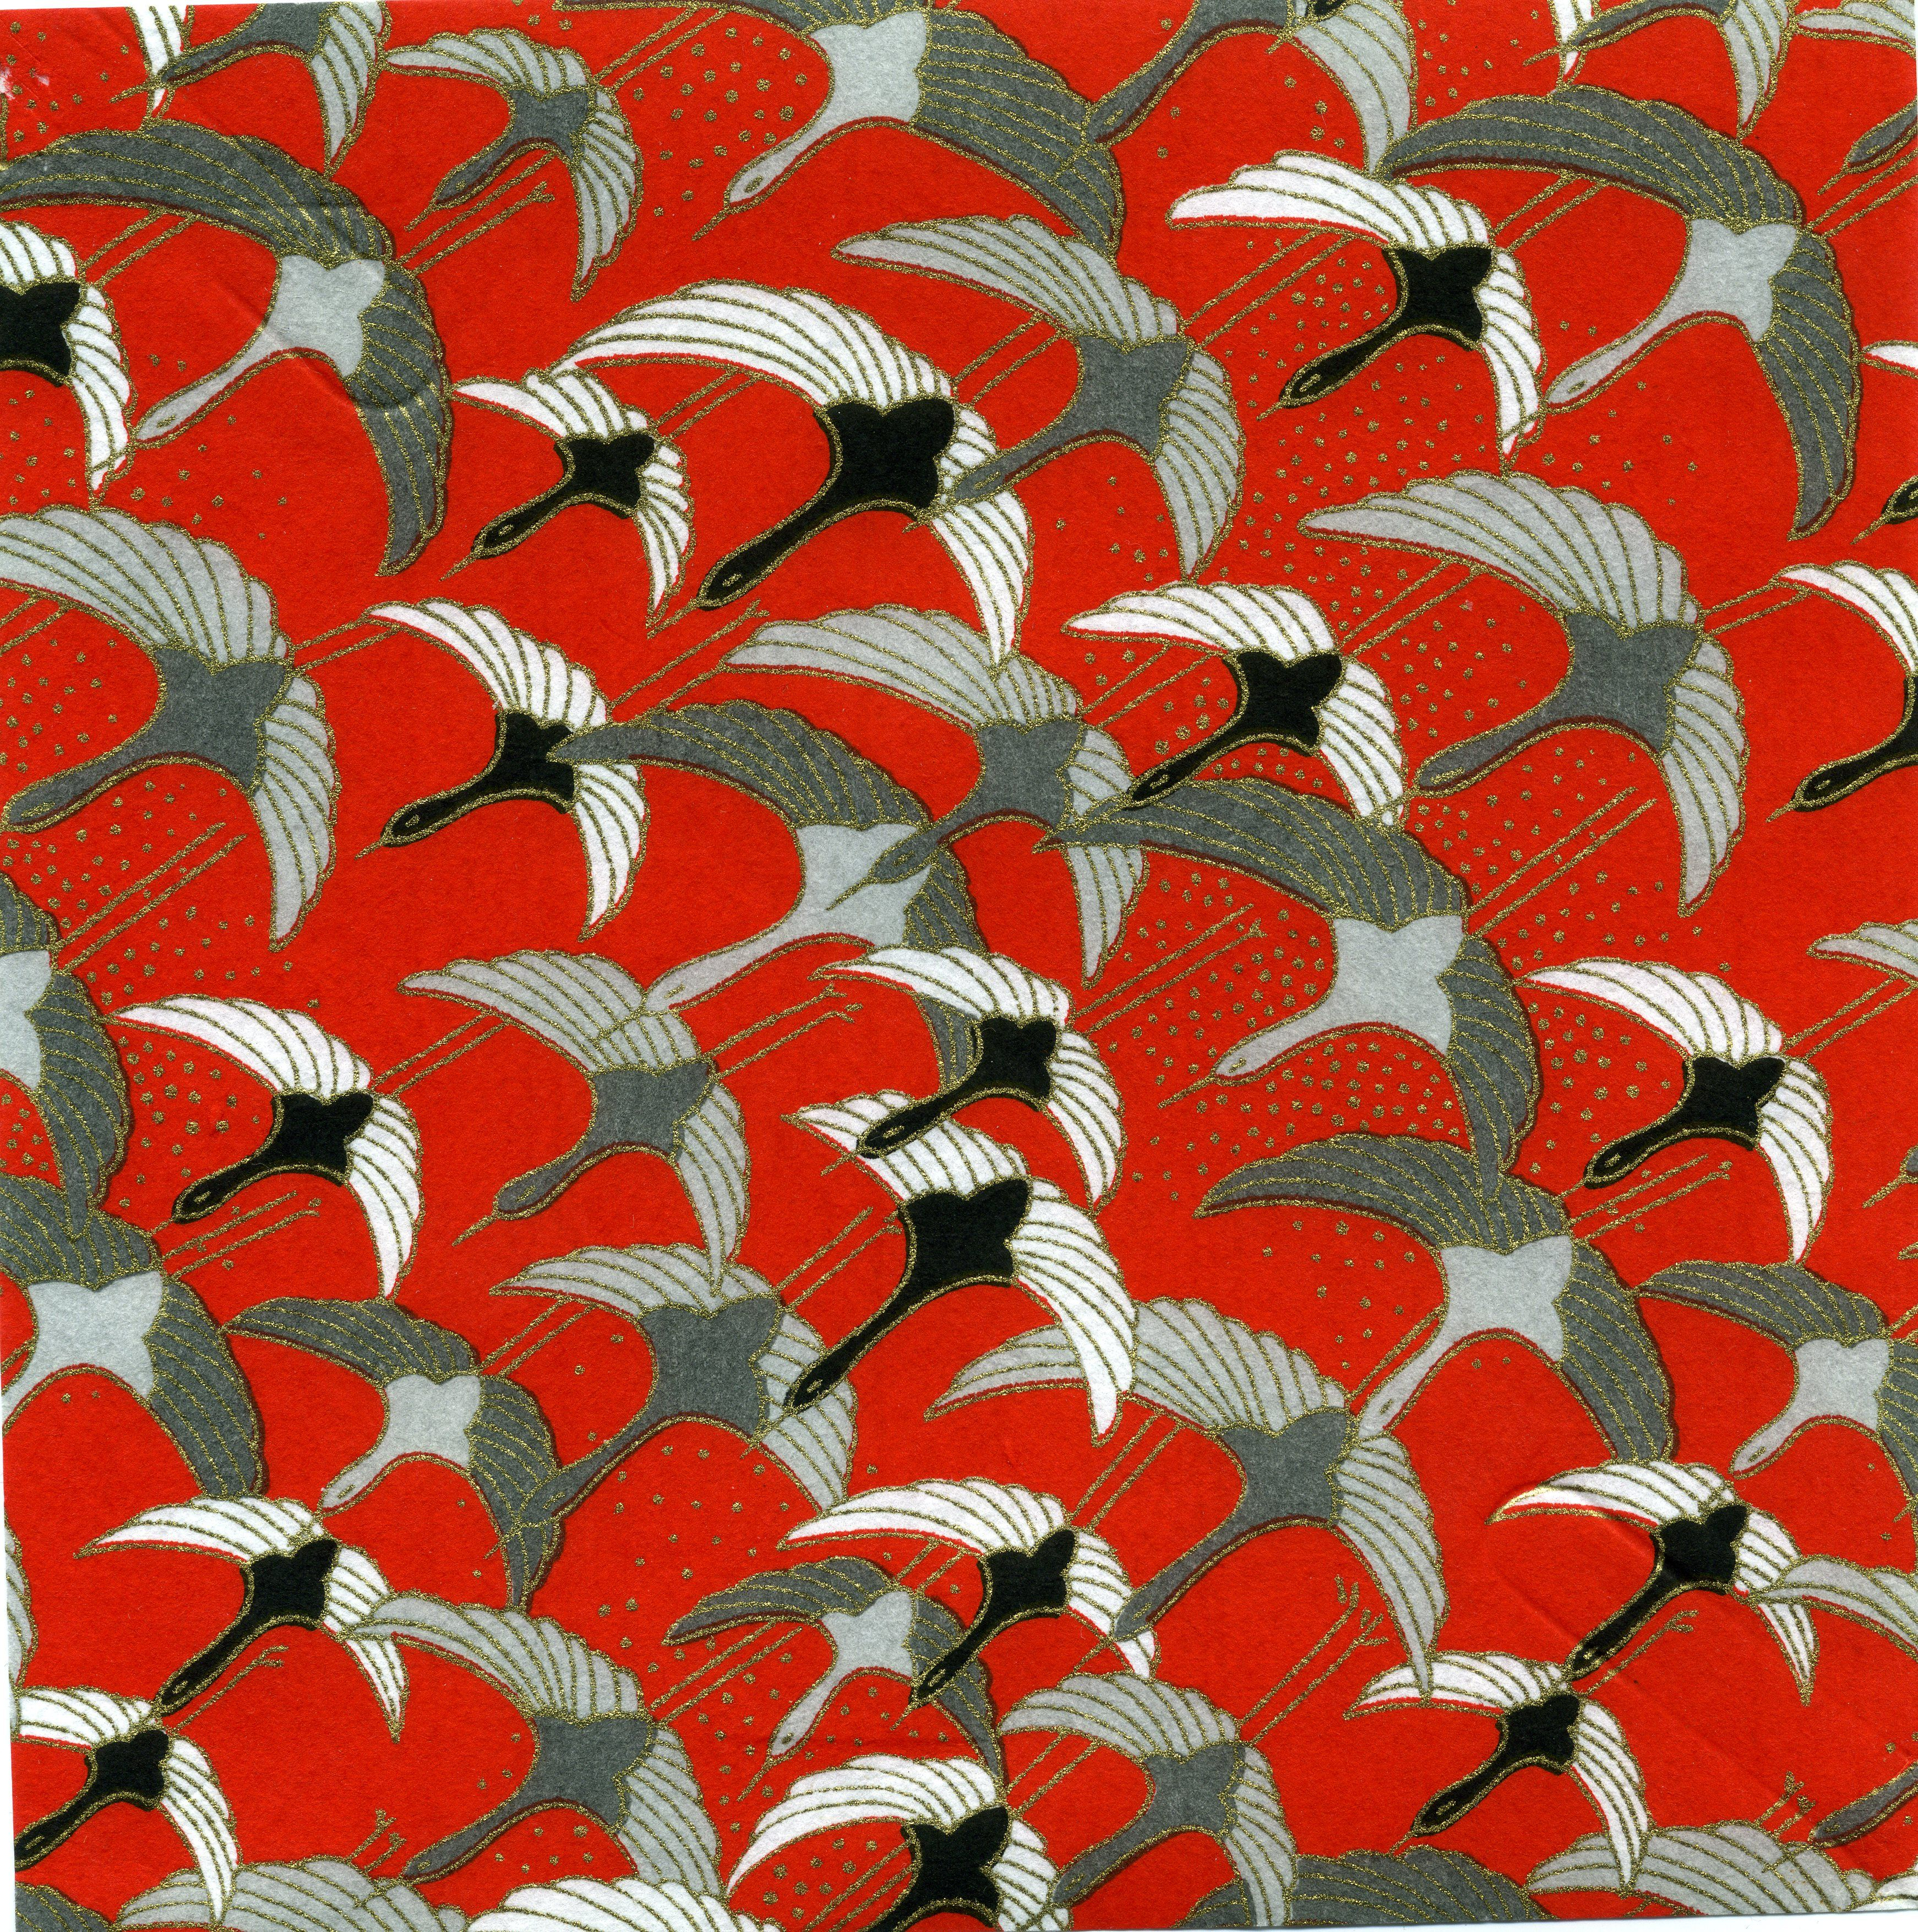 Origami Paper Patterns Bing Images Origami Paper Pattern Paper Origami Printables